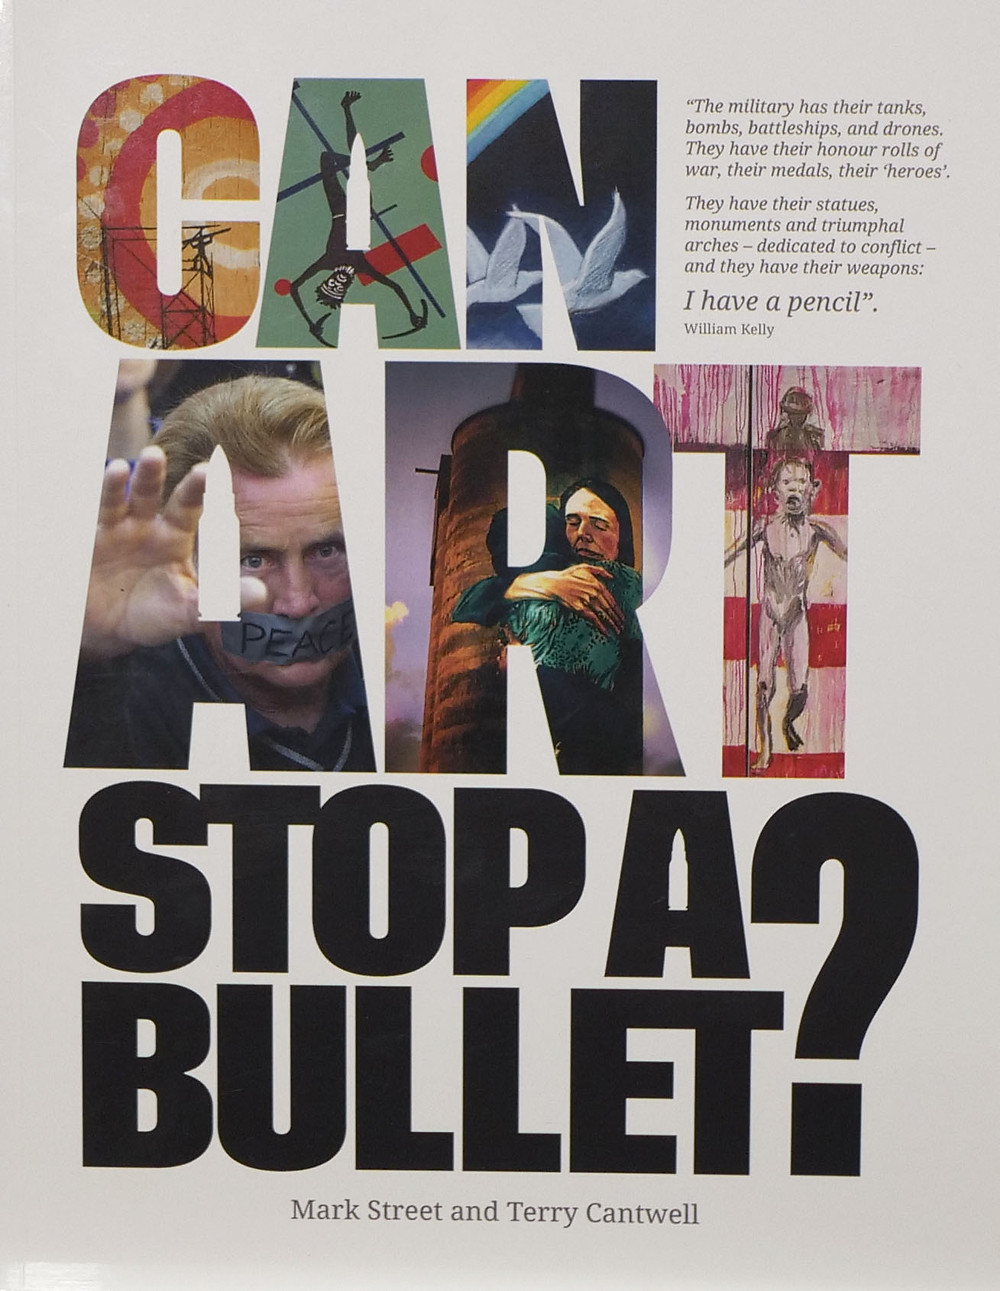 Terry Cantwell book Can Art Stop a Bullet?